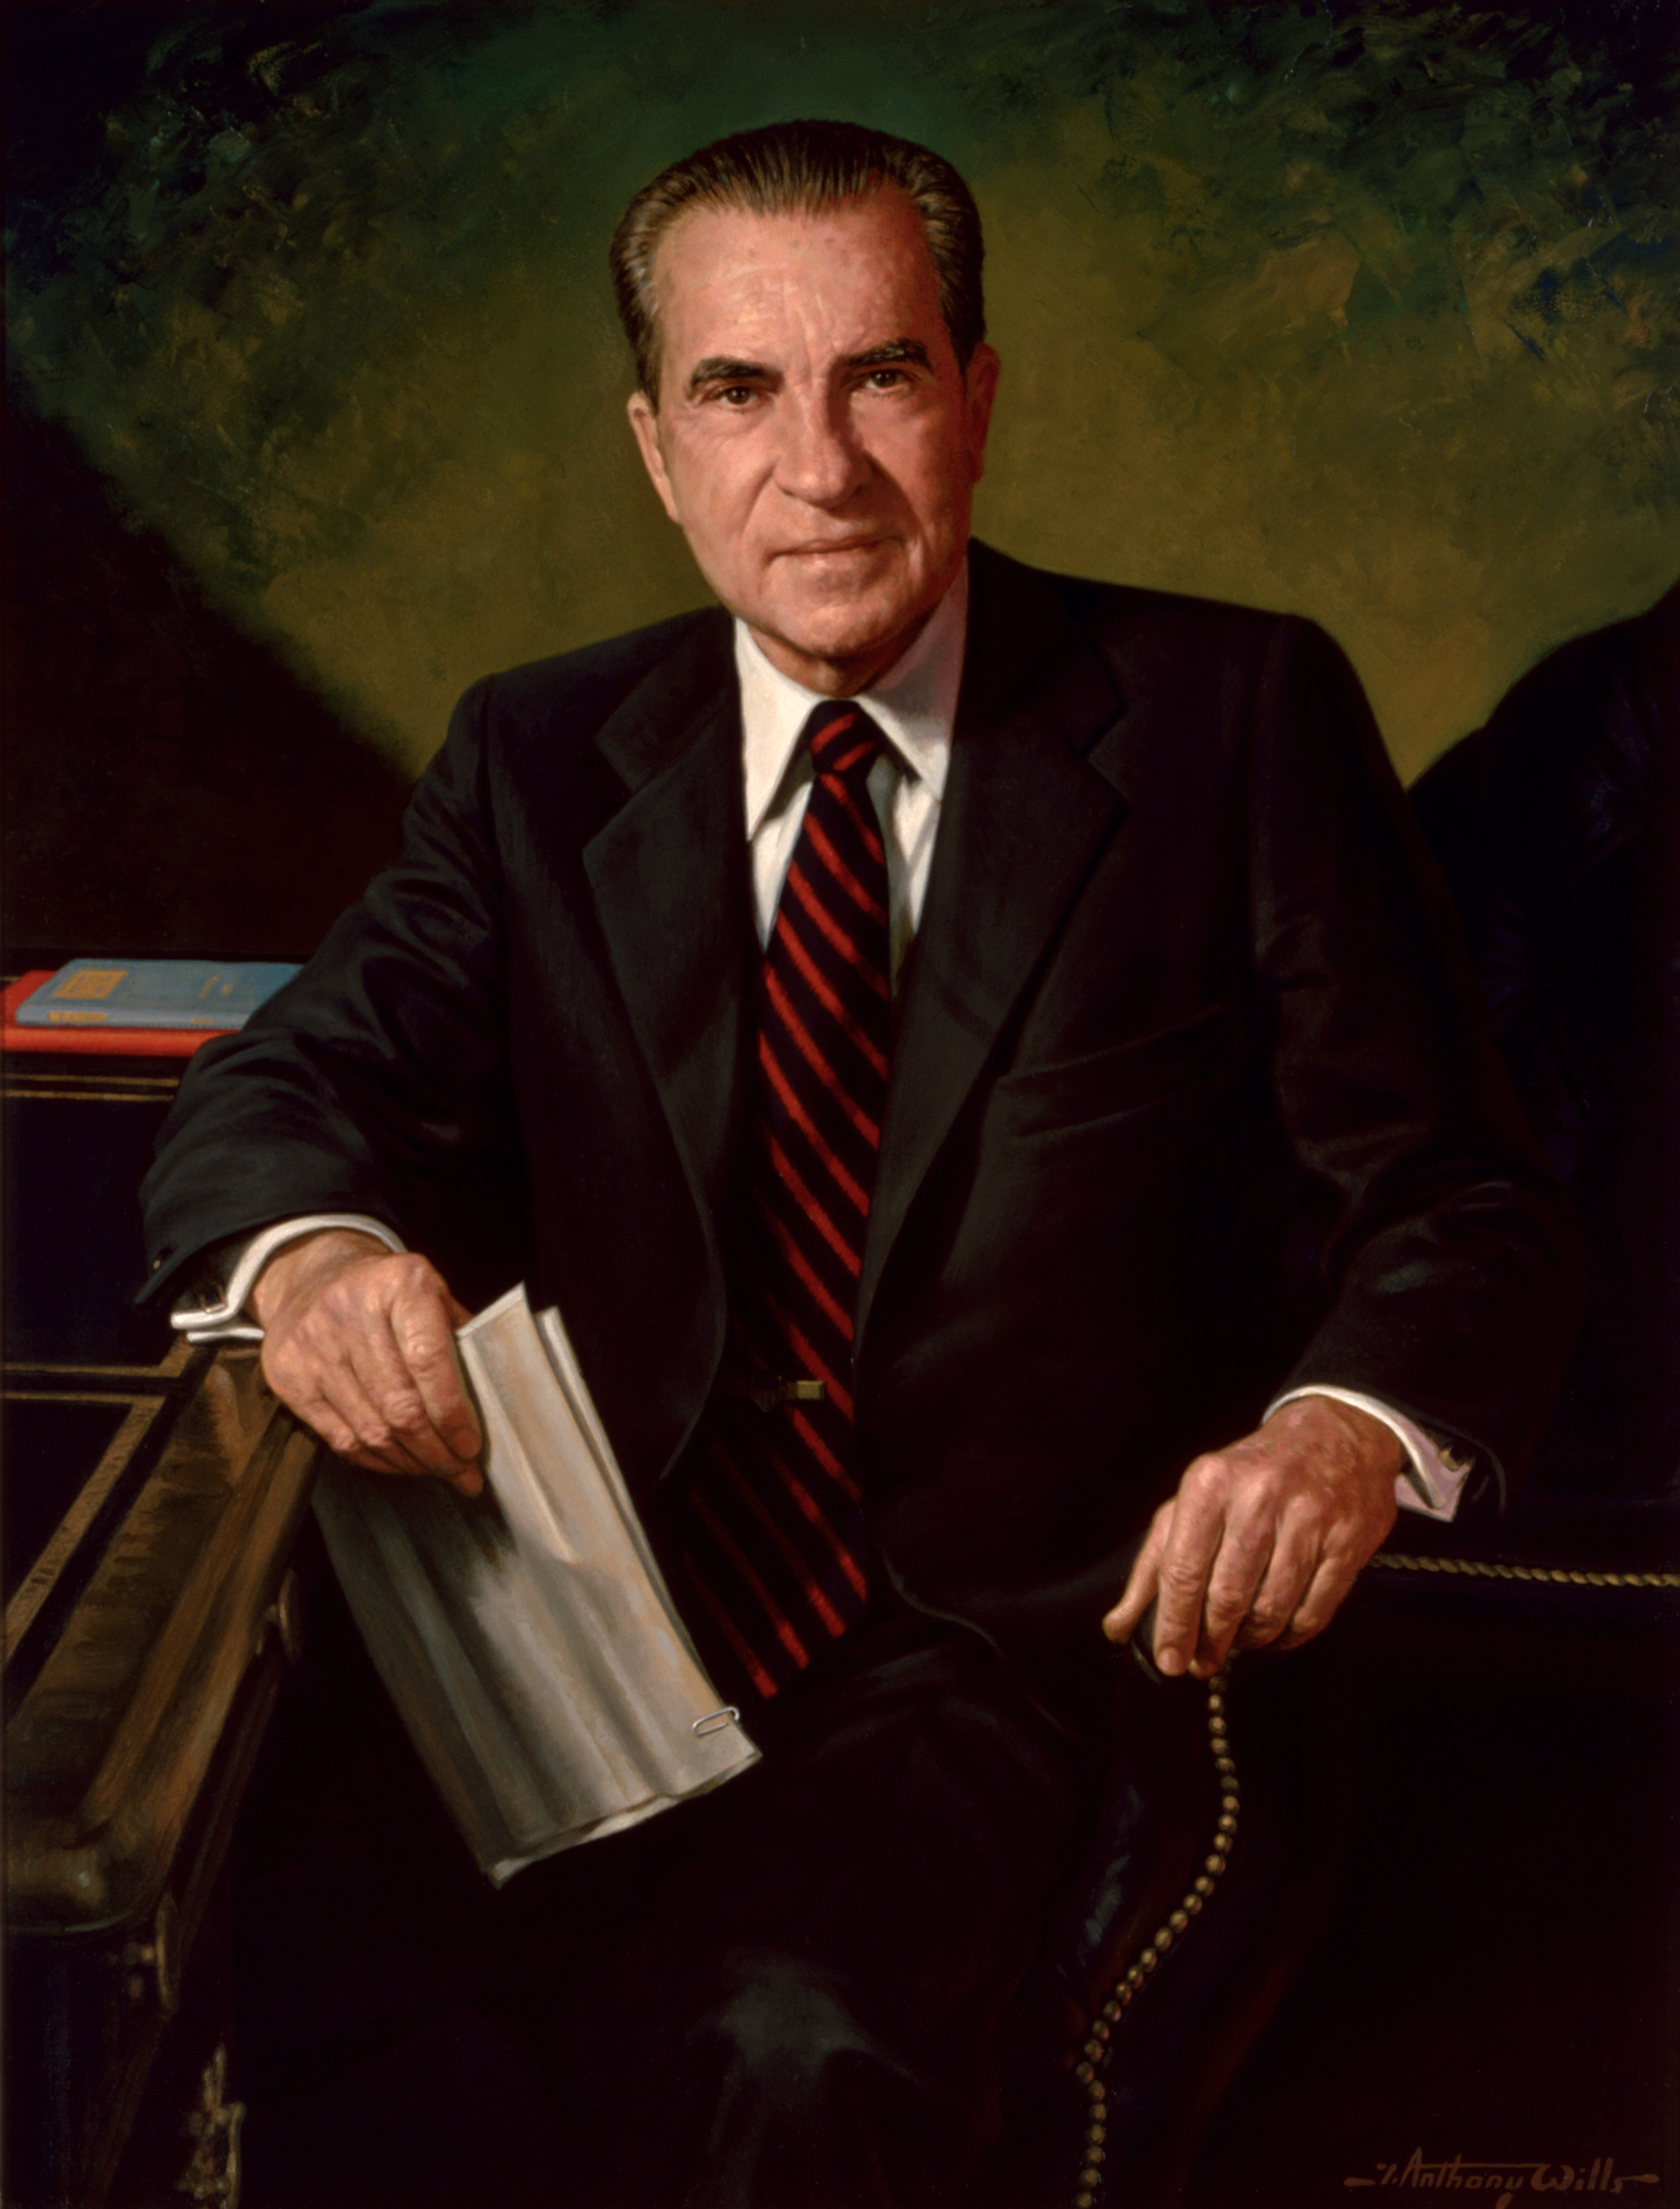 File:Richard Nixon - Presidential portrait.jpg